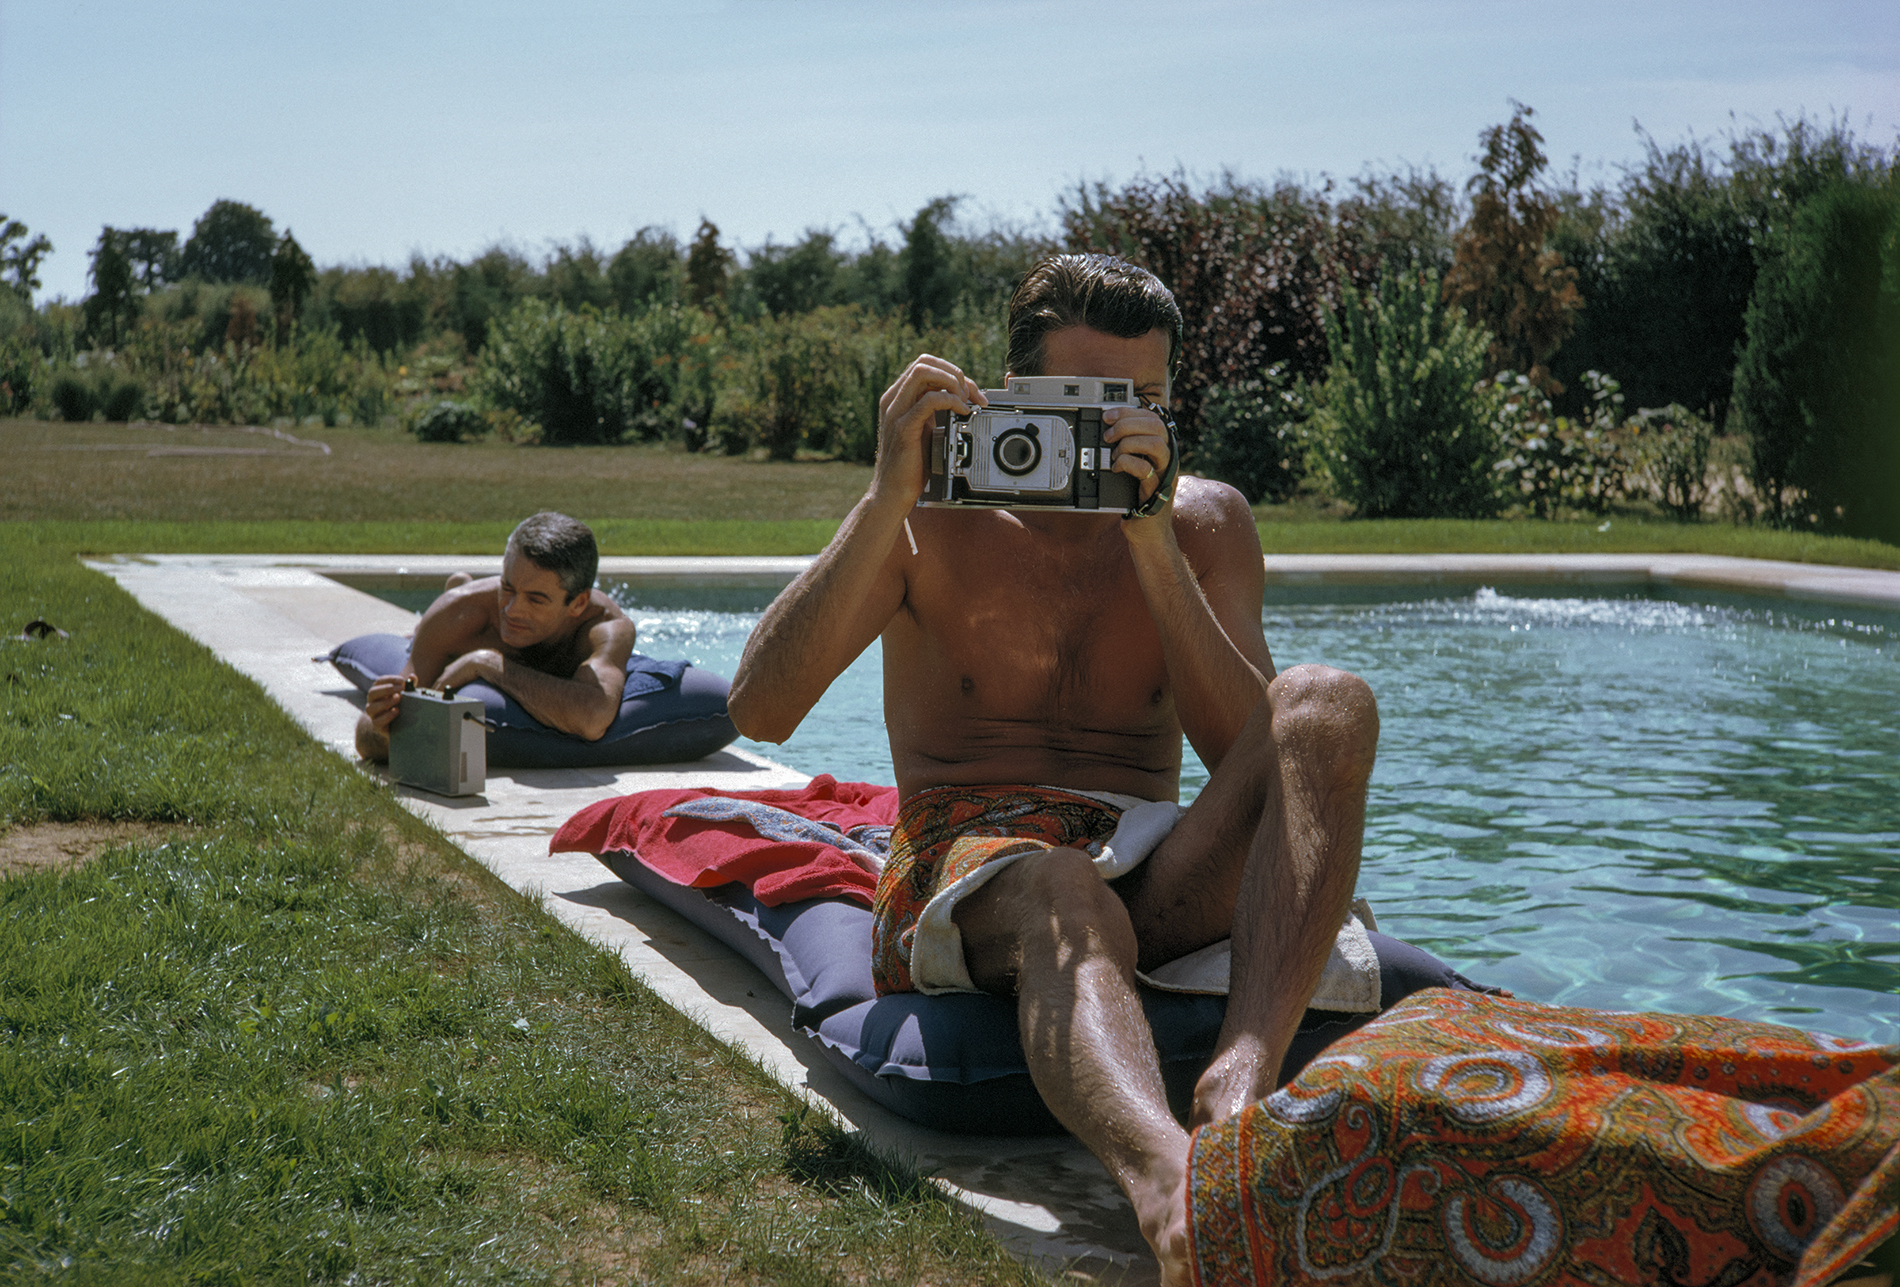 Givenchy takes a photograph by the Pool, South of Paris, France, 1961 © TONY VACCARO - COURTESY MONROE GALLERY OF PHOTOGRAPHY